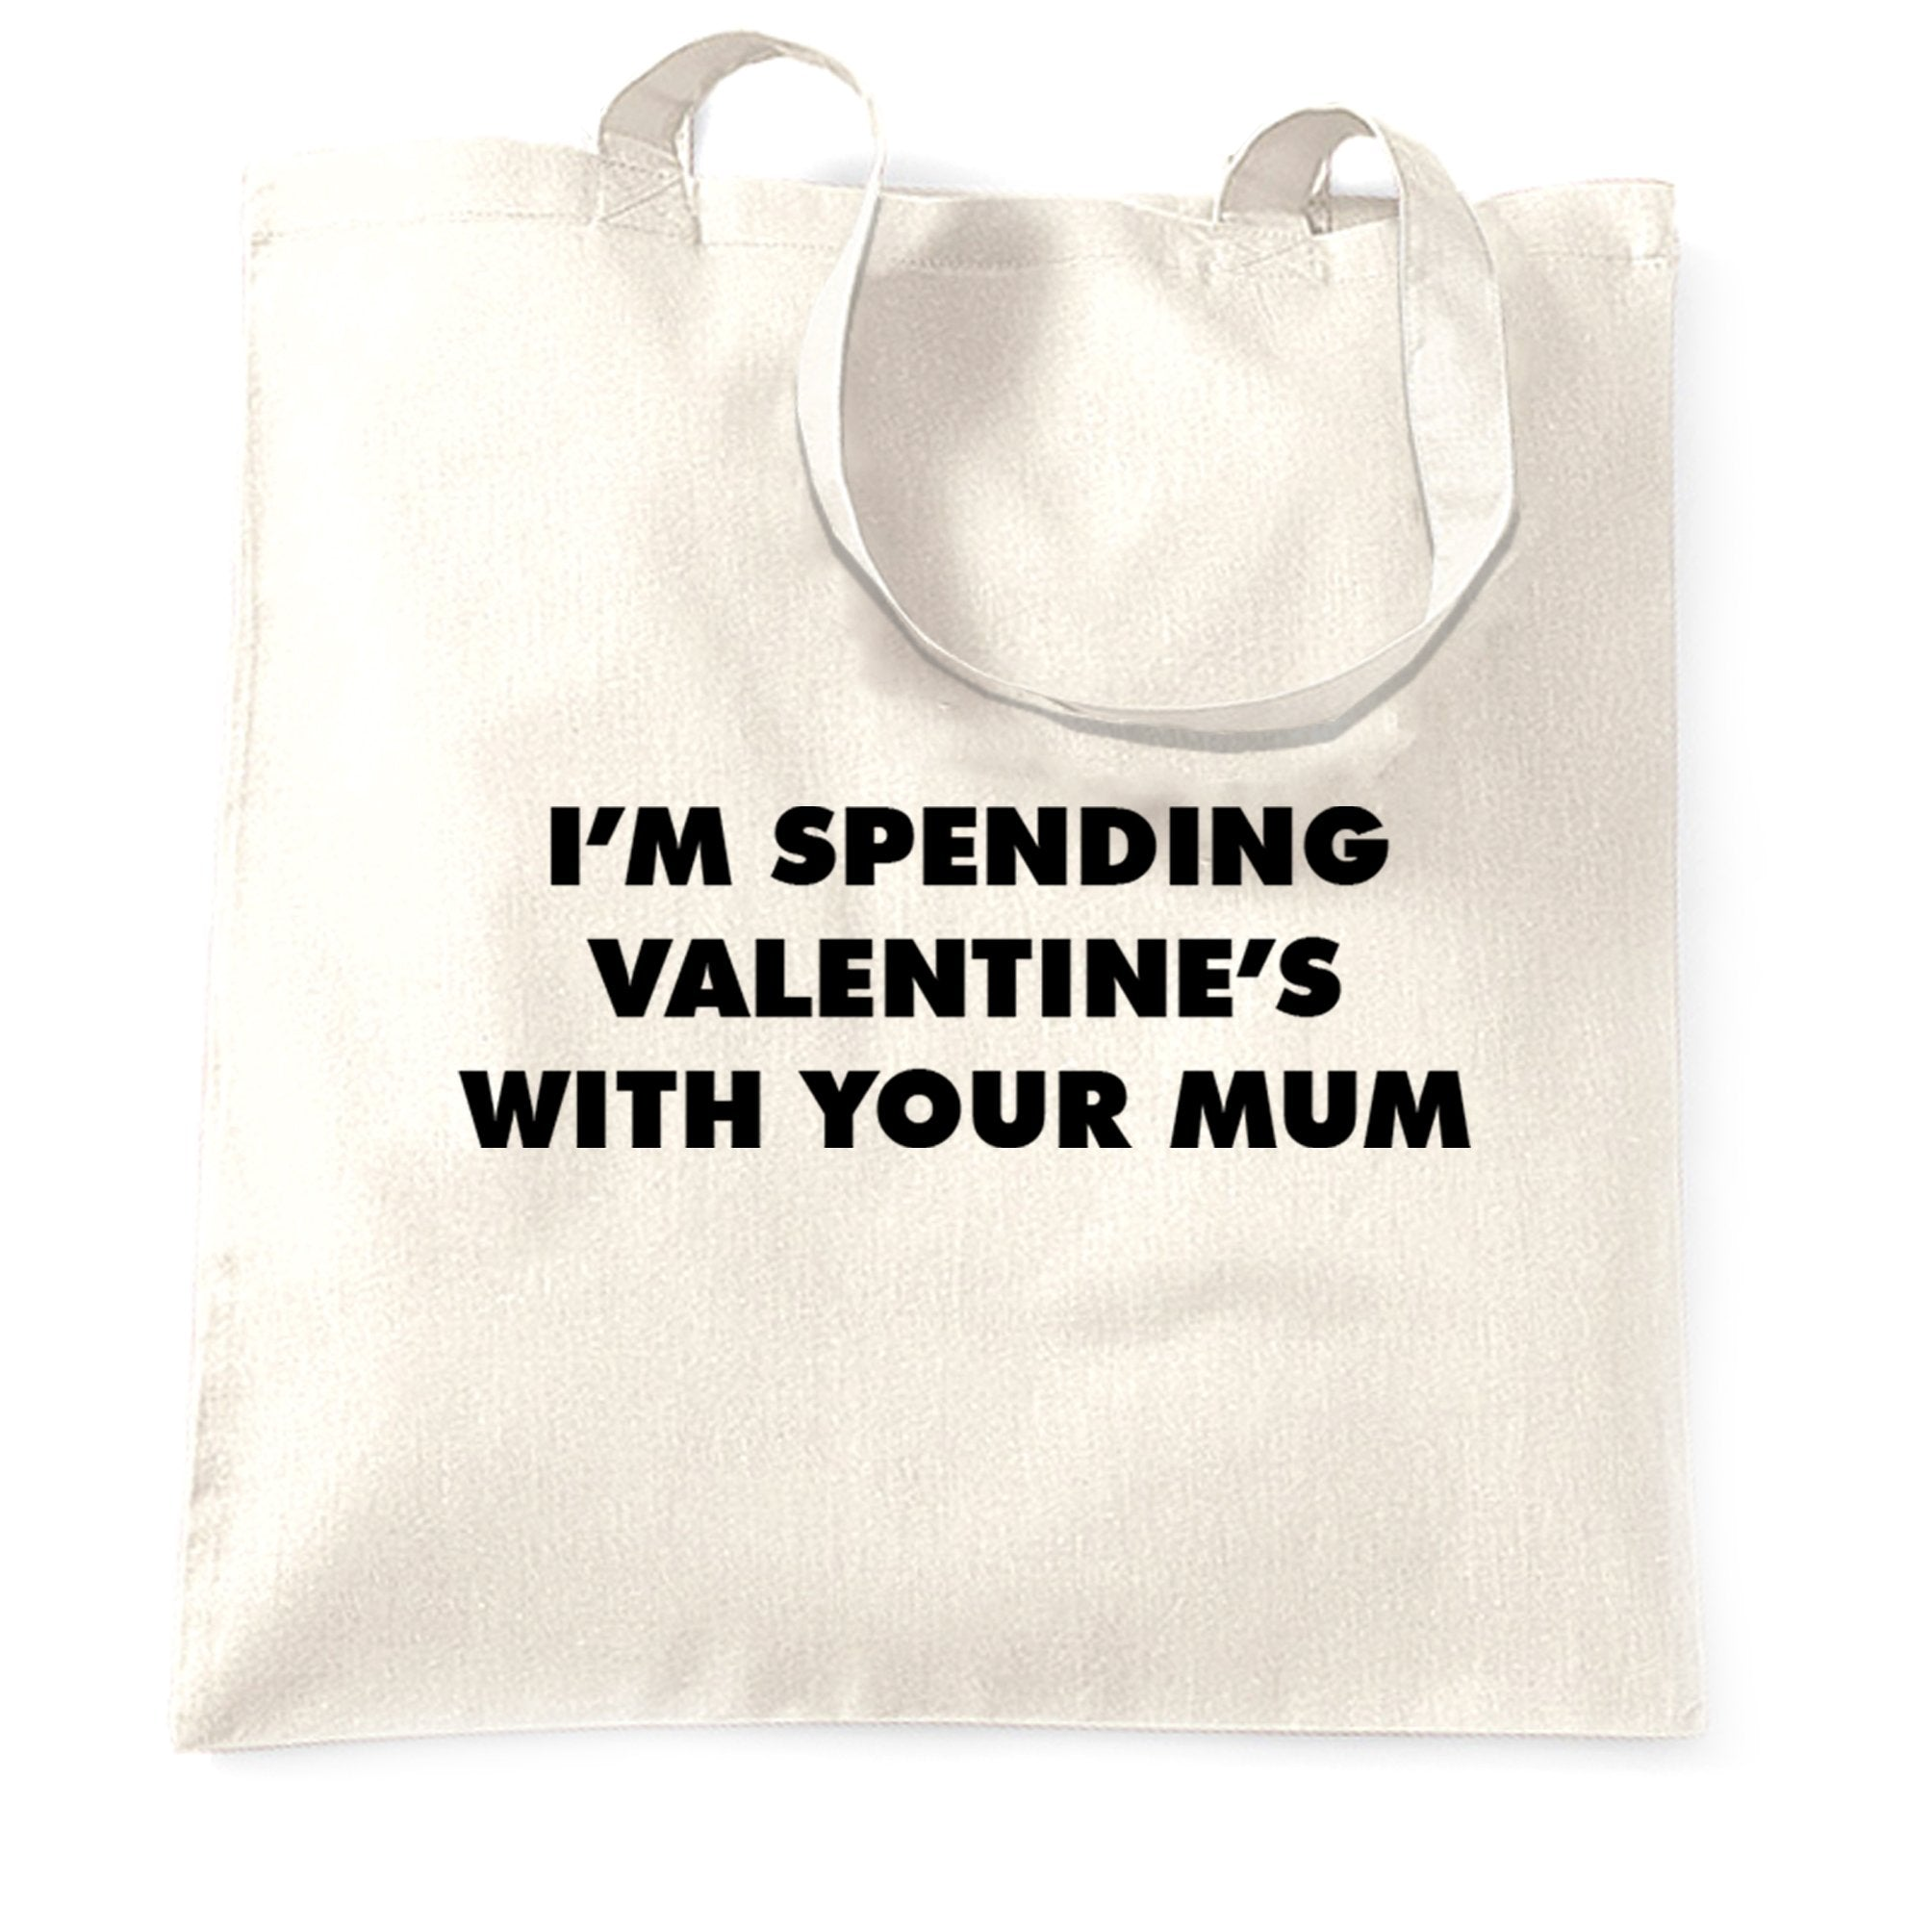 Novelty Tote Bag Spending Valentine's With Your Mum